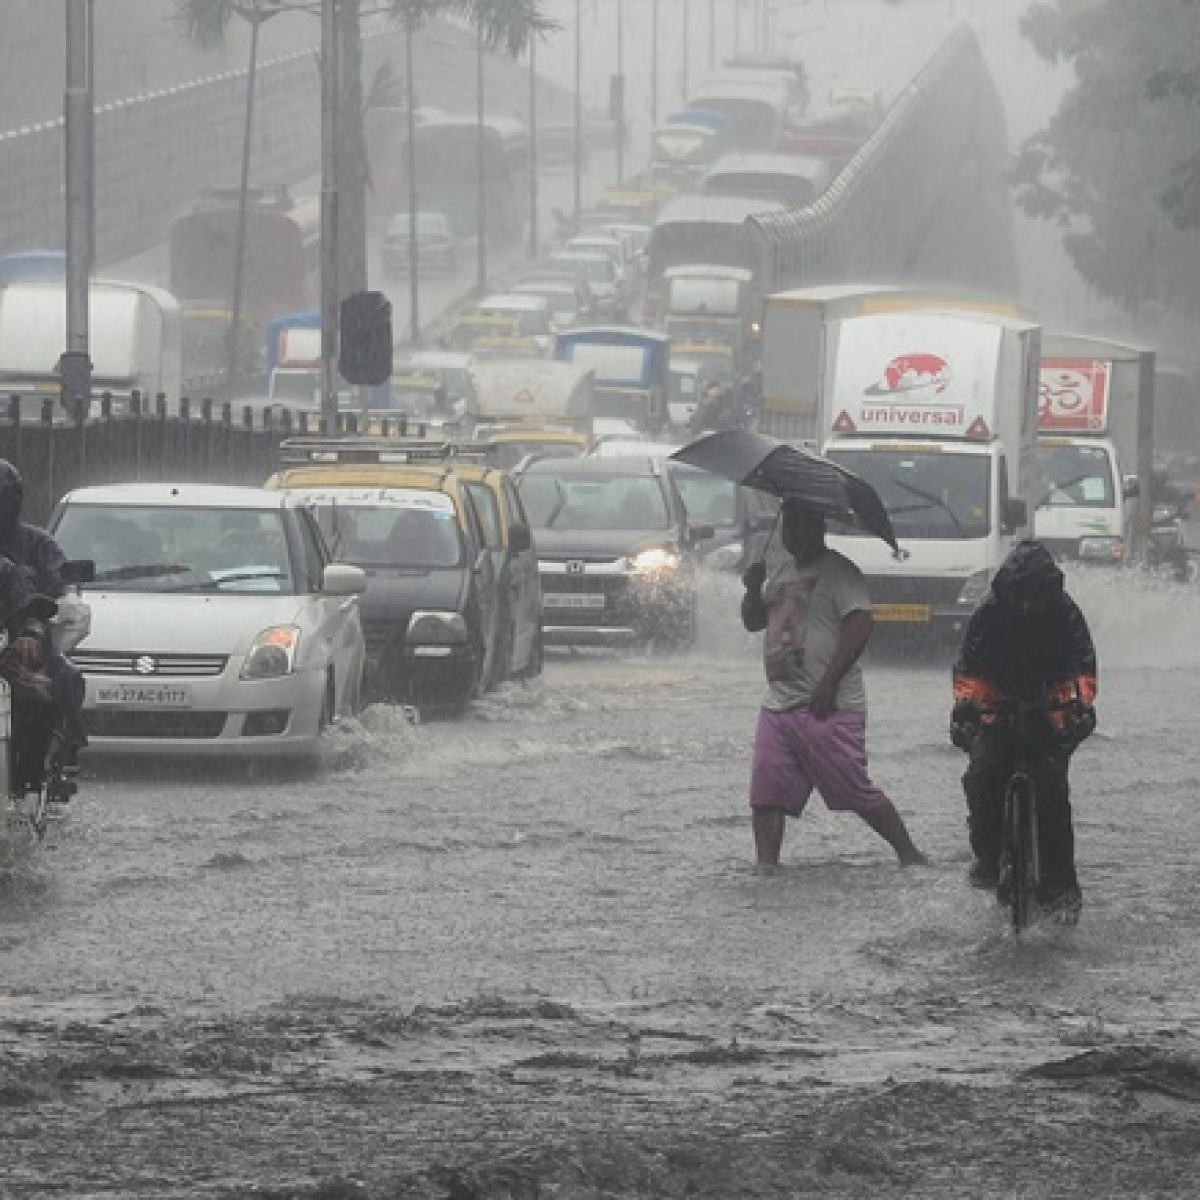 Mumbai Rains: IMD issues red alert for city, says heavy to very heavy rainfall possible today